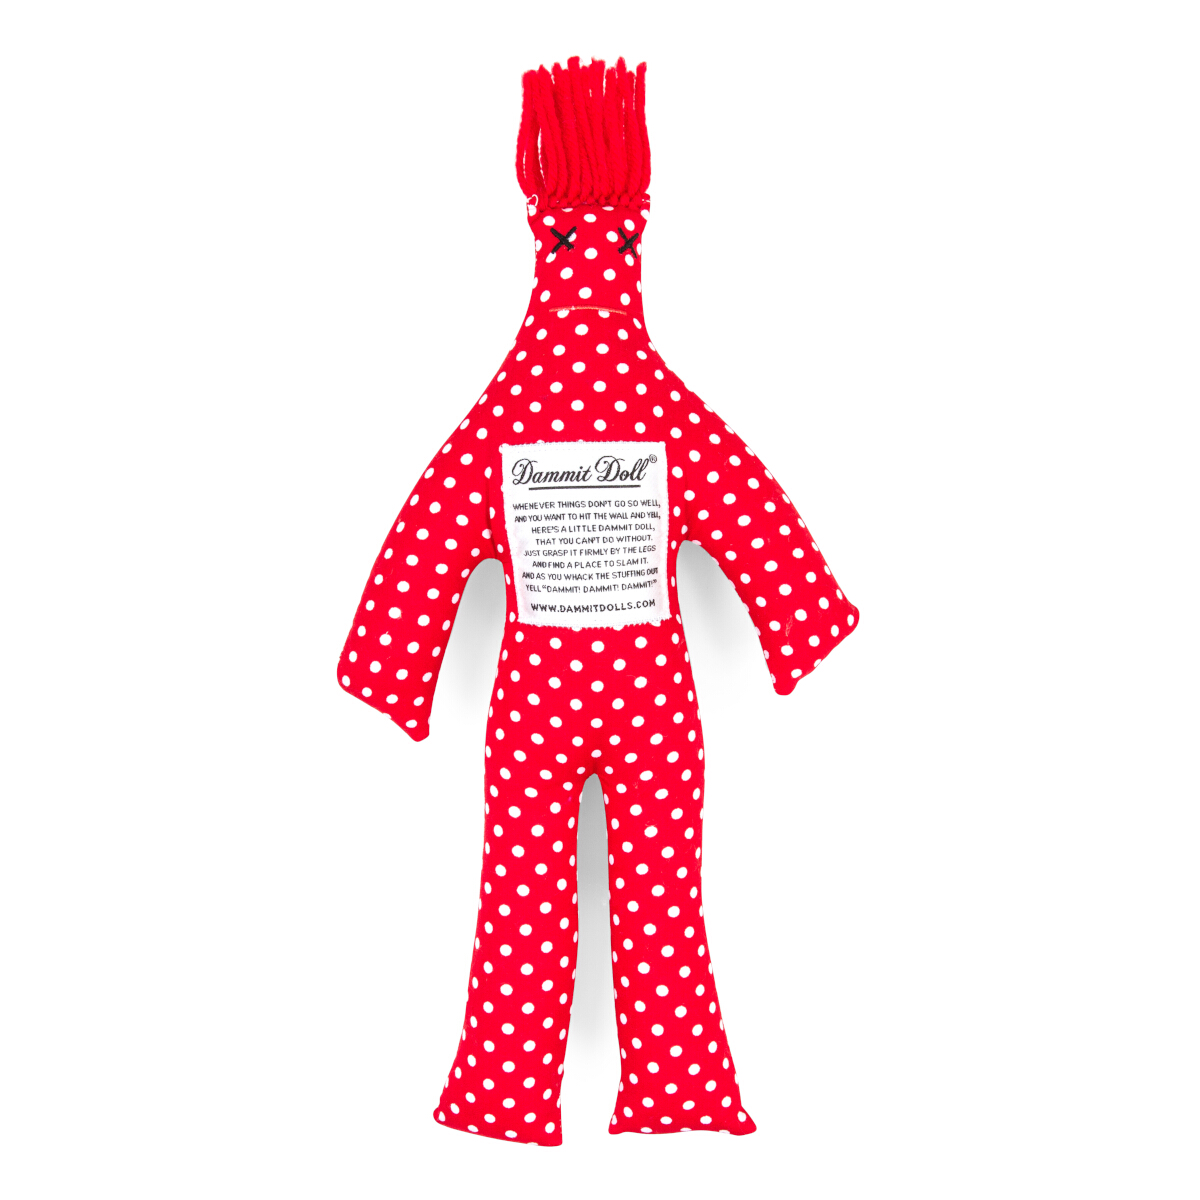 image Dammit Doll Assortment